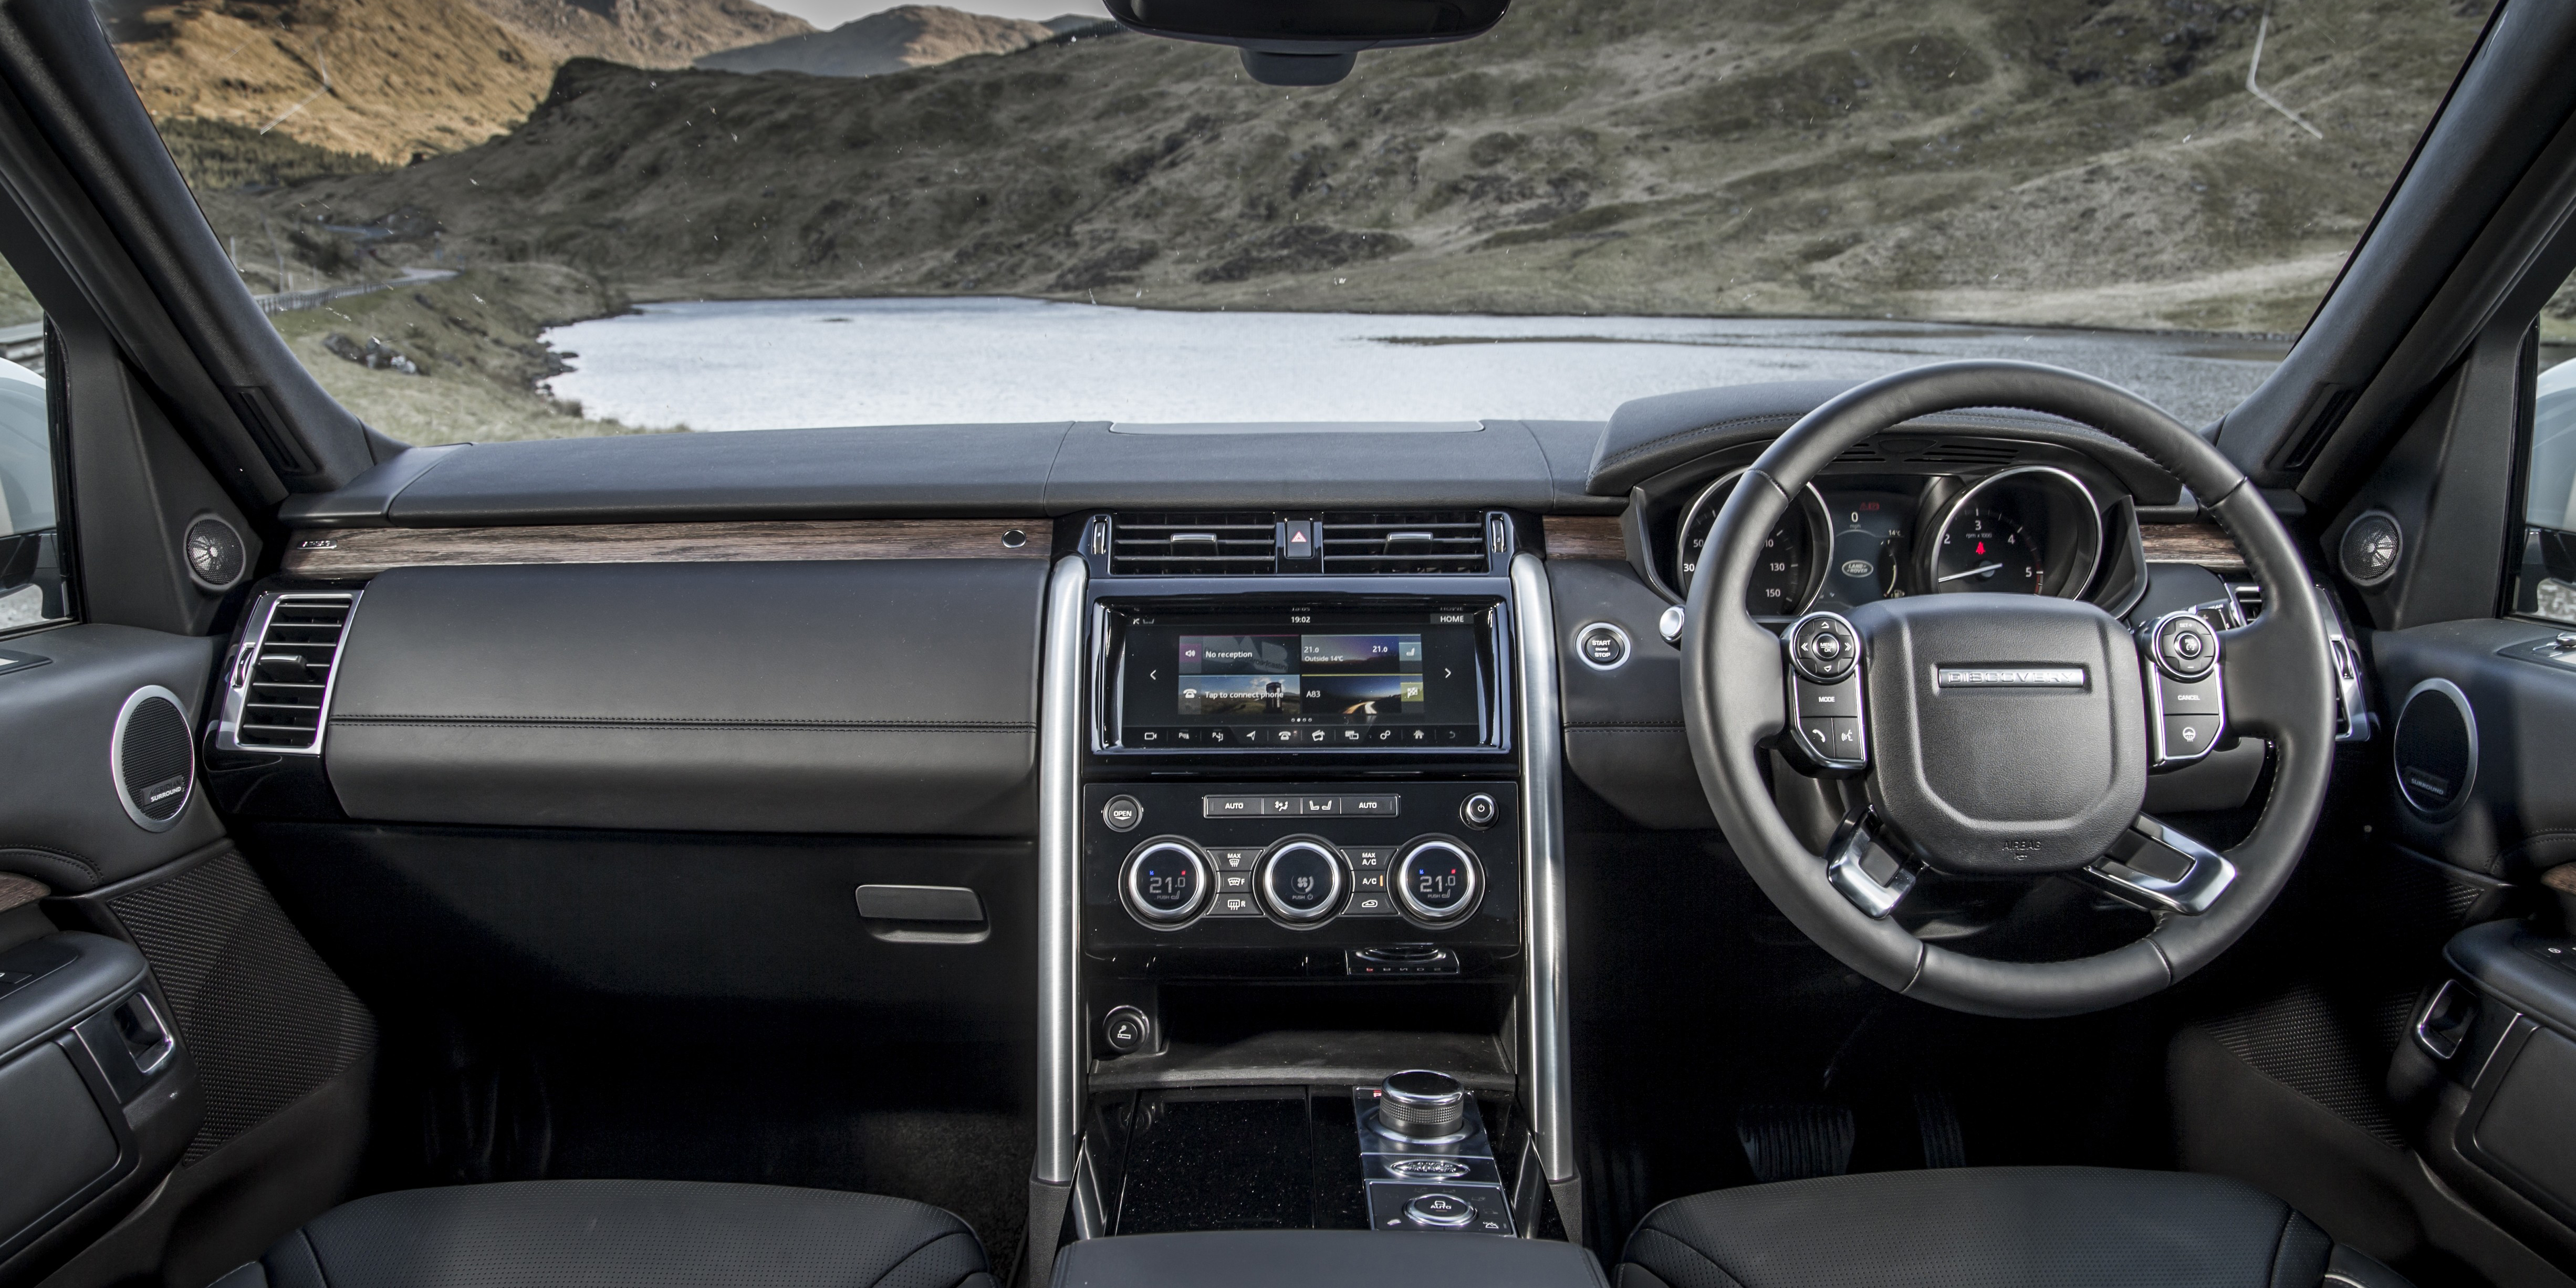 Land Rover Discovery Interior Amp Infotainment Carwow